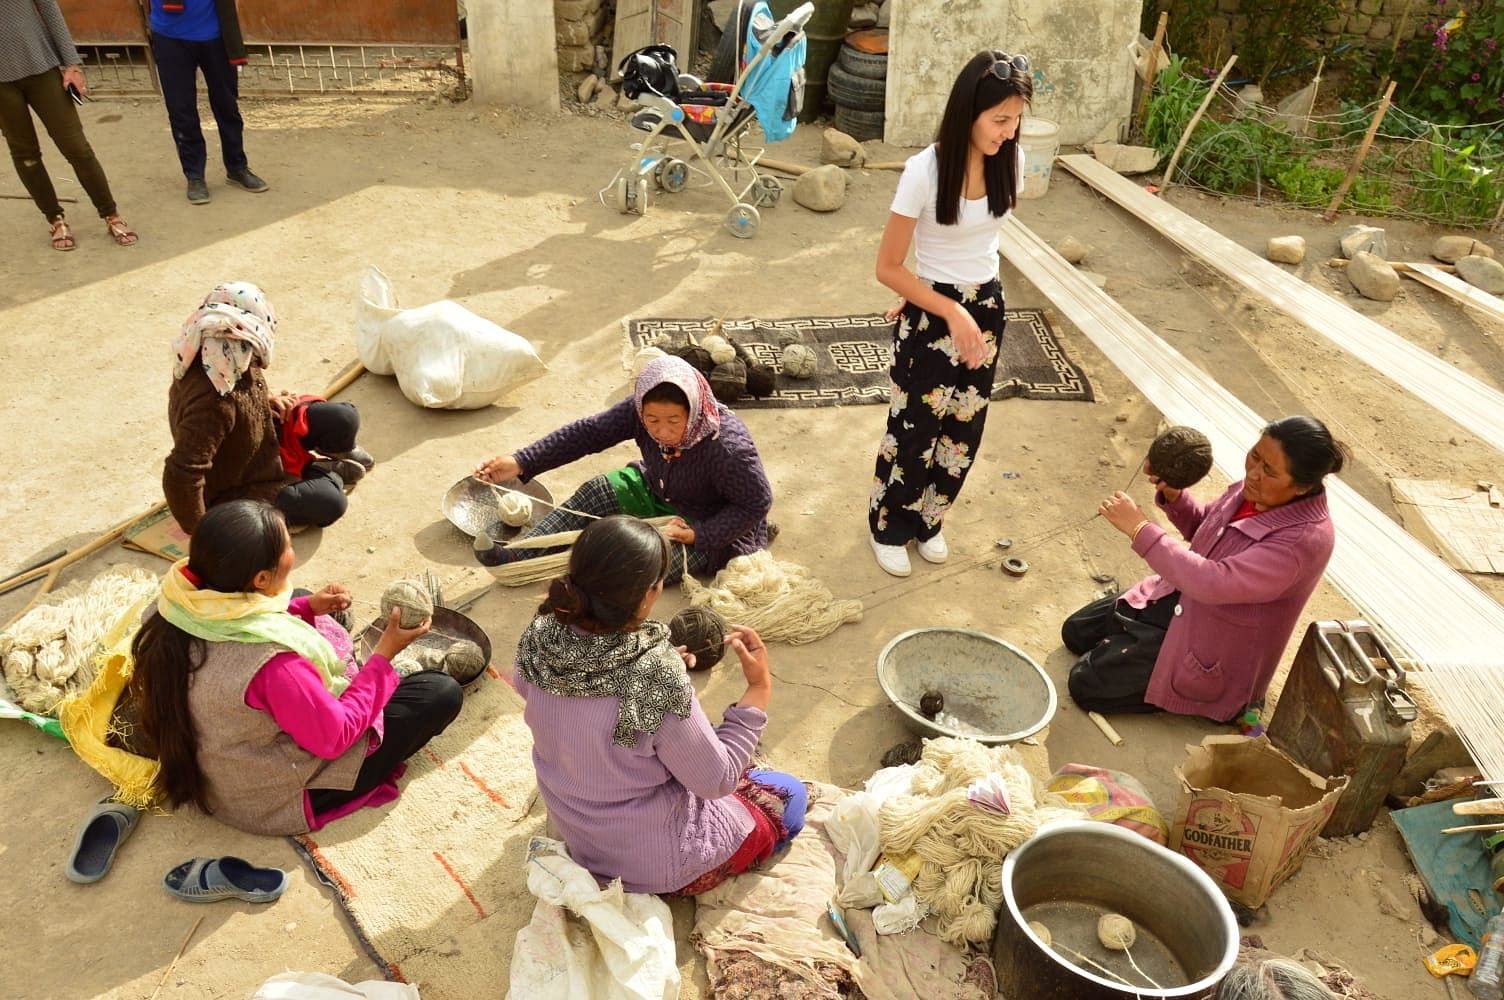 Lachic overseeing local artisans at work. (Source: Rigzin Wangmo Lachic Goji)